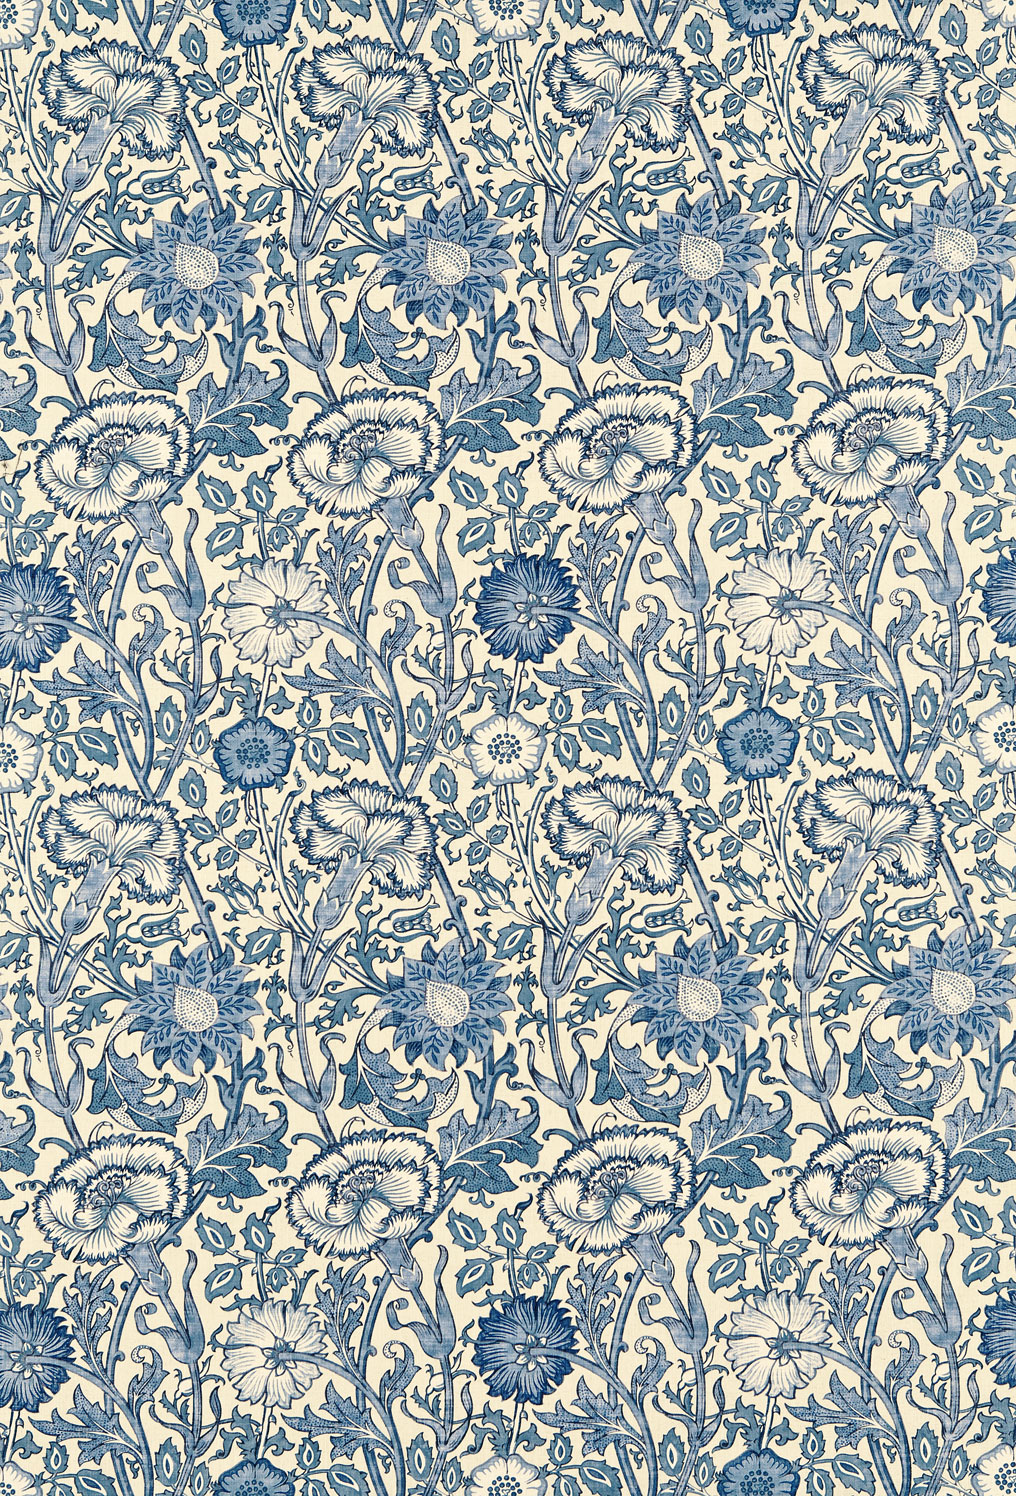 Englische tapetenmuster william morris stil tapeten online for Tapete blumenmuster